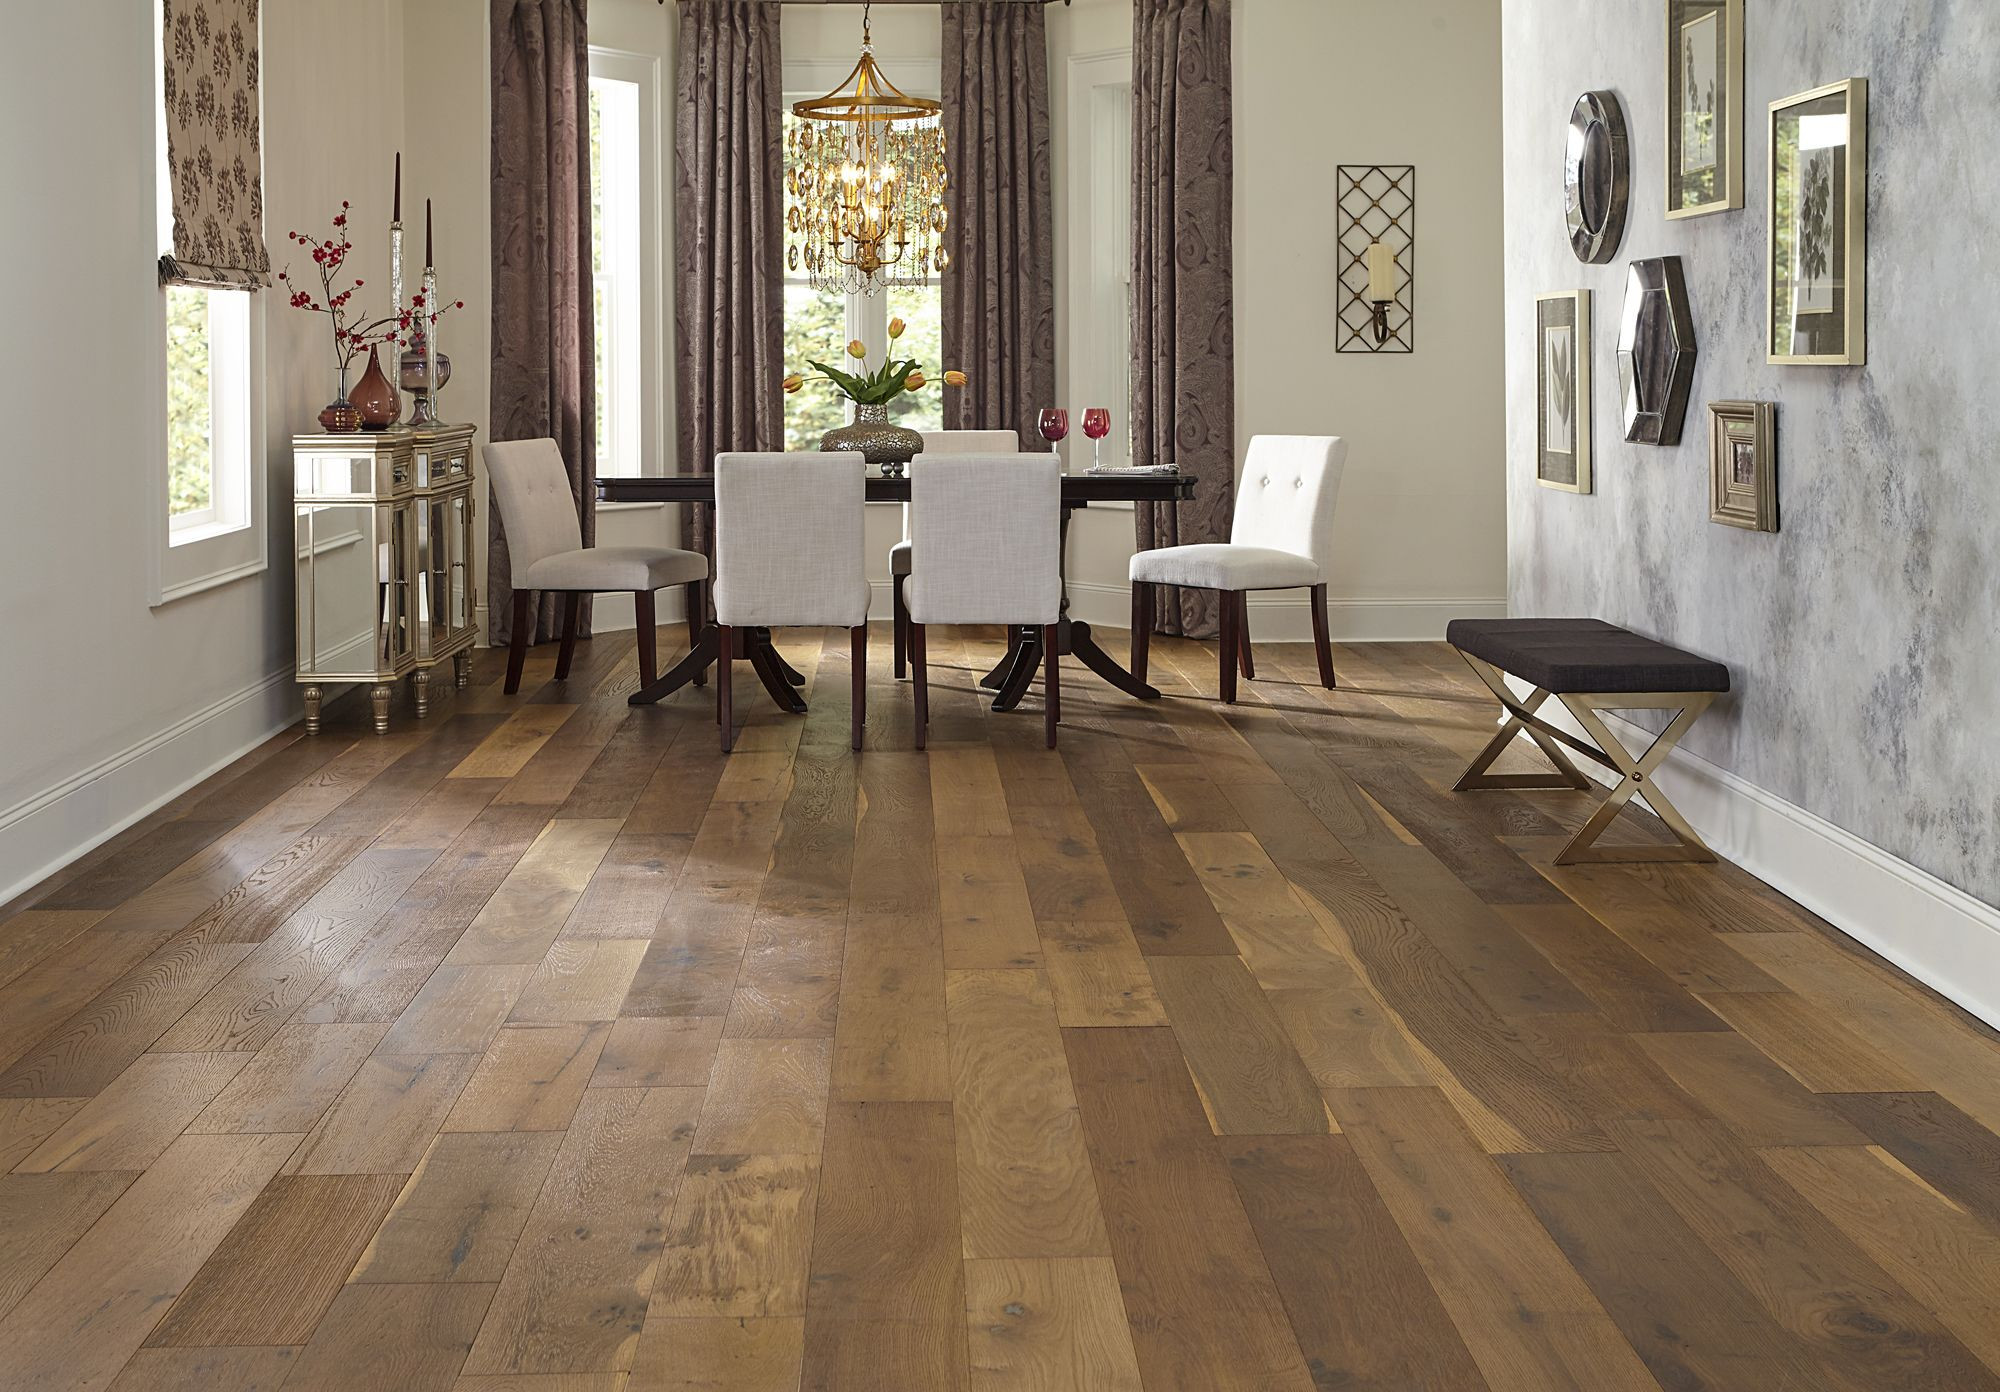 bellawood hardwood flooring prices of 7 1 2 wide planks and a rustic look bellawood willow manor oak has for 7 1 2 wide planks and a rustic look bellawood willow manor oak has a storied old world appearance